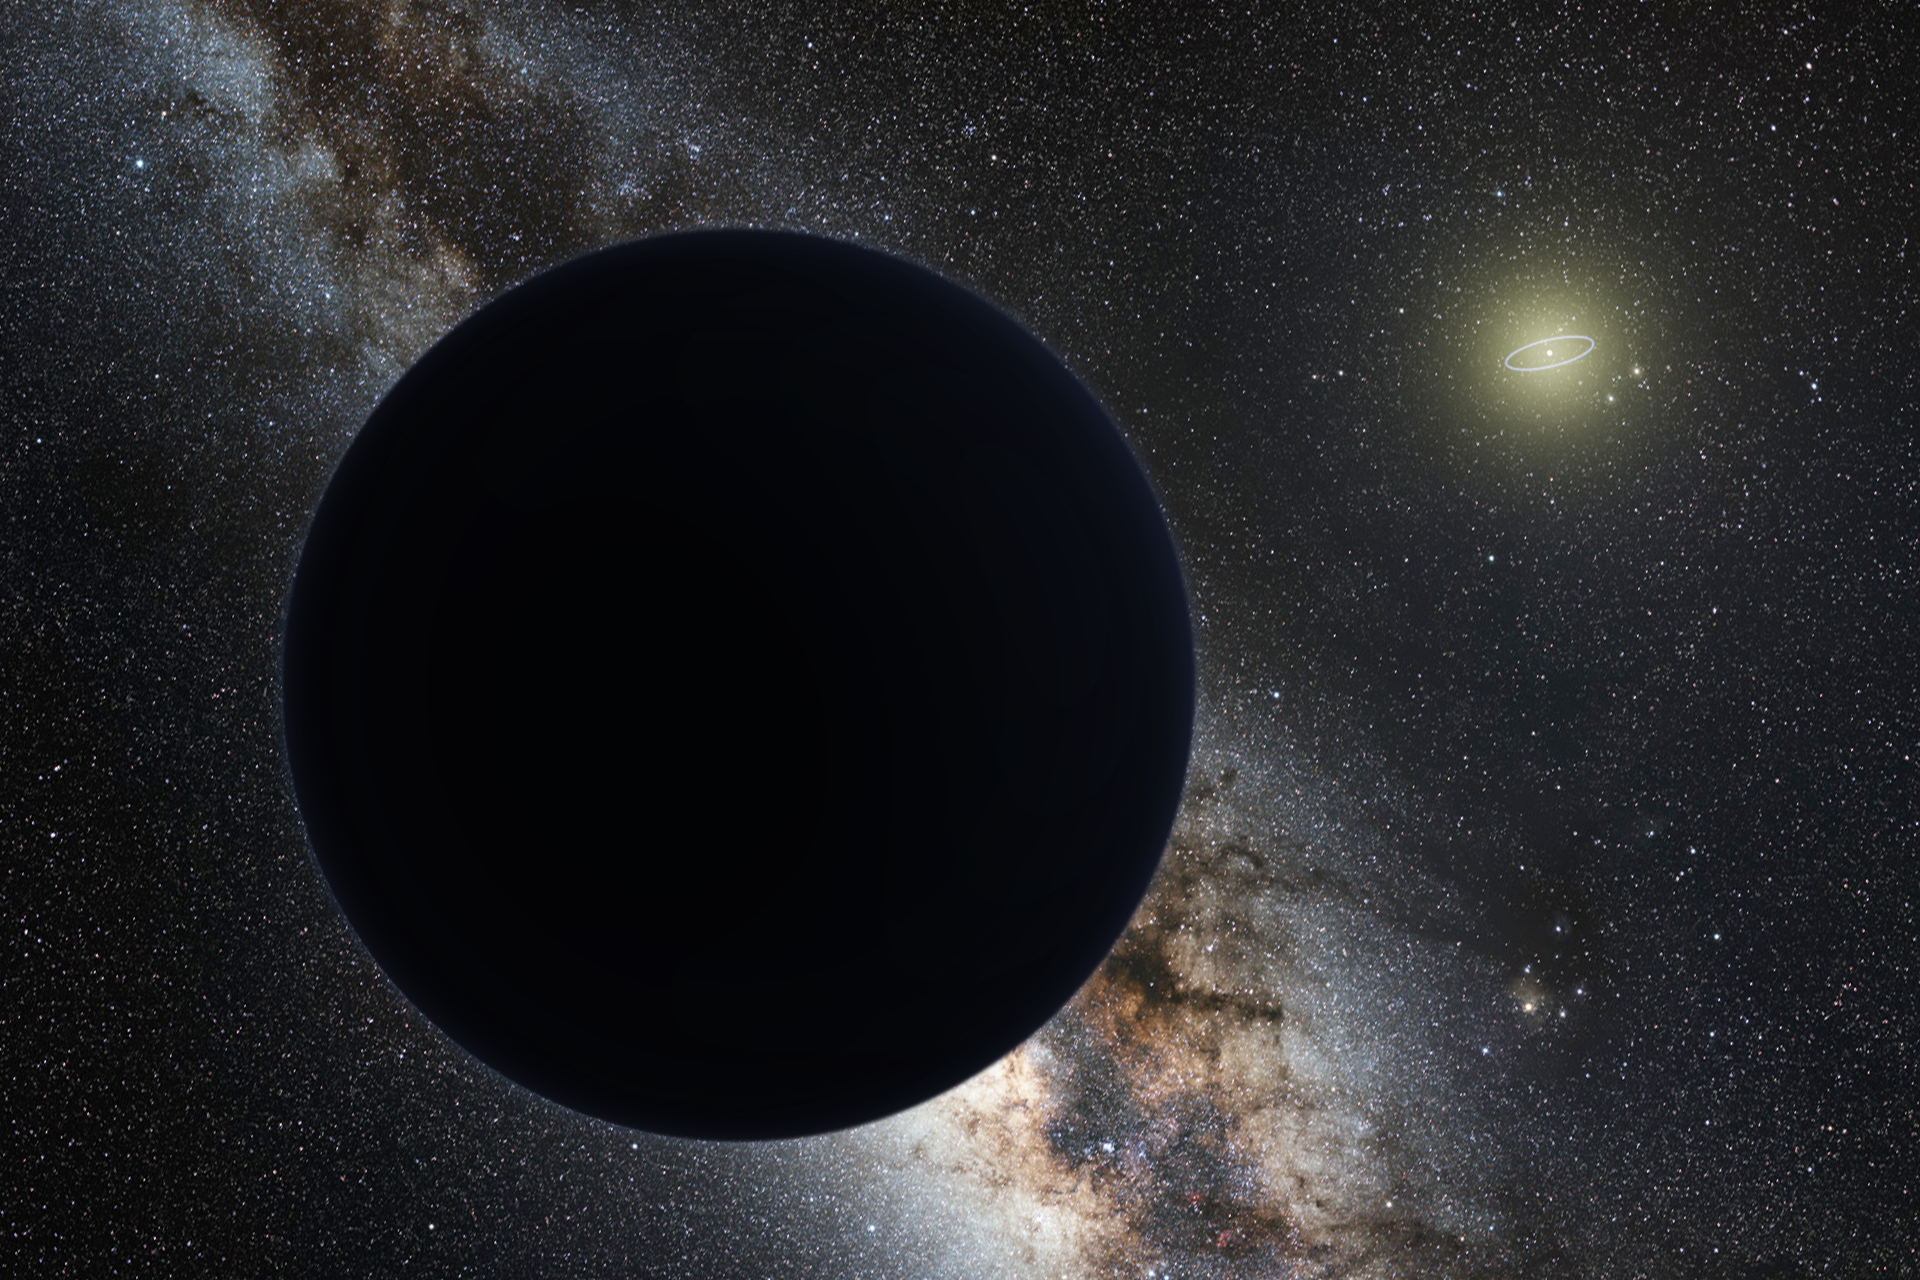 Artist's impression of Planet Nine as an ice giant eclipsing the central Milky Way, with the Sun in the distance – Image Credit: Tomruen/WikimediaCommons